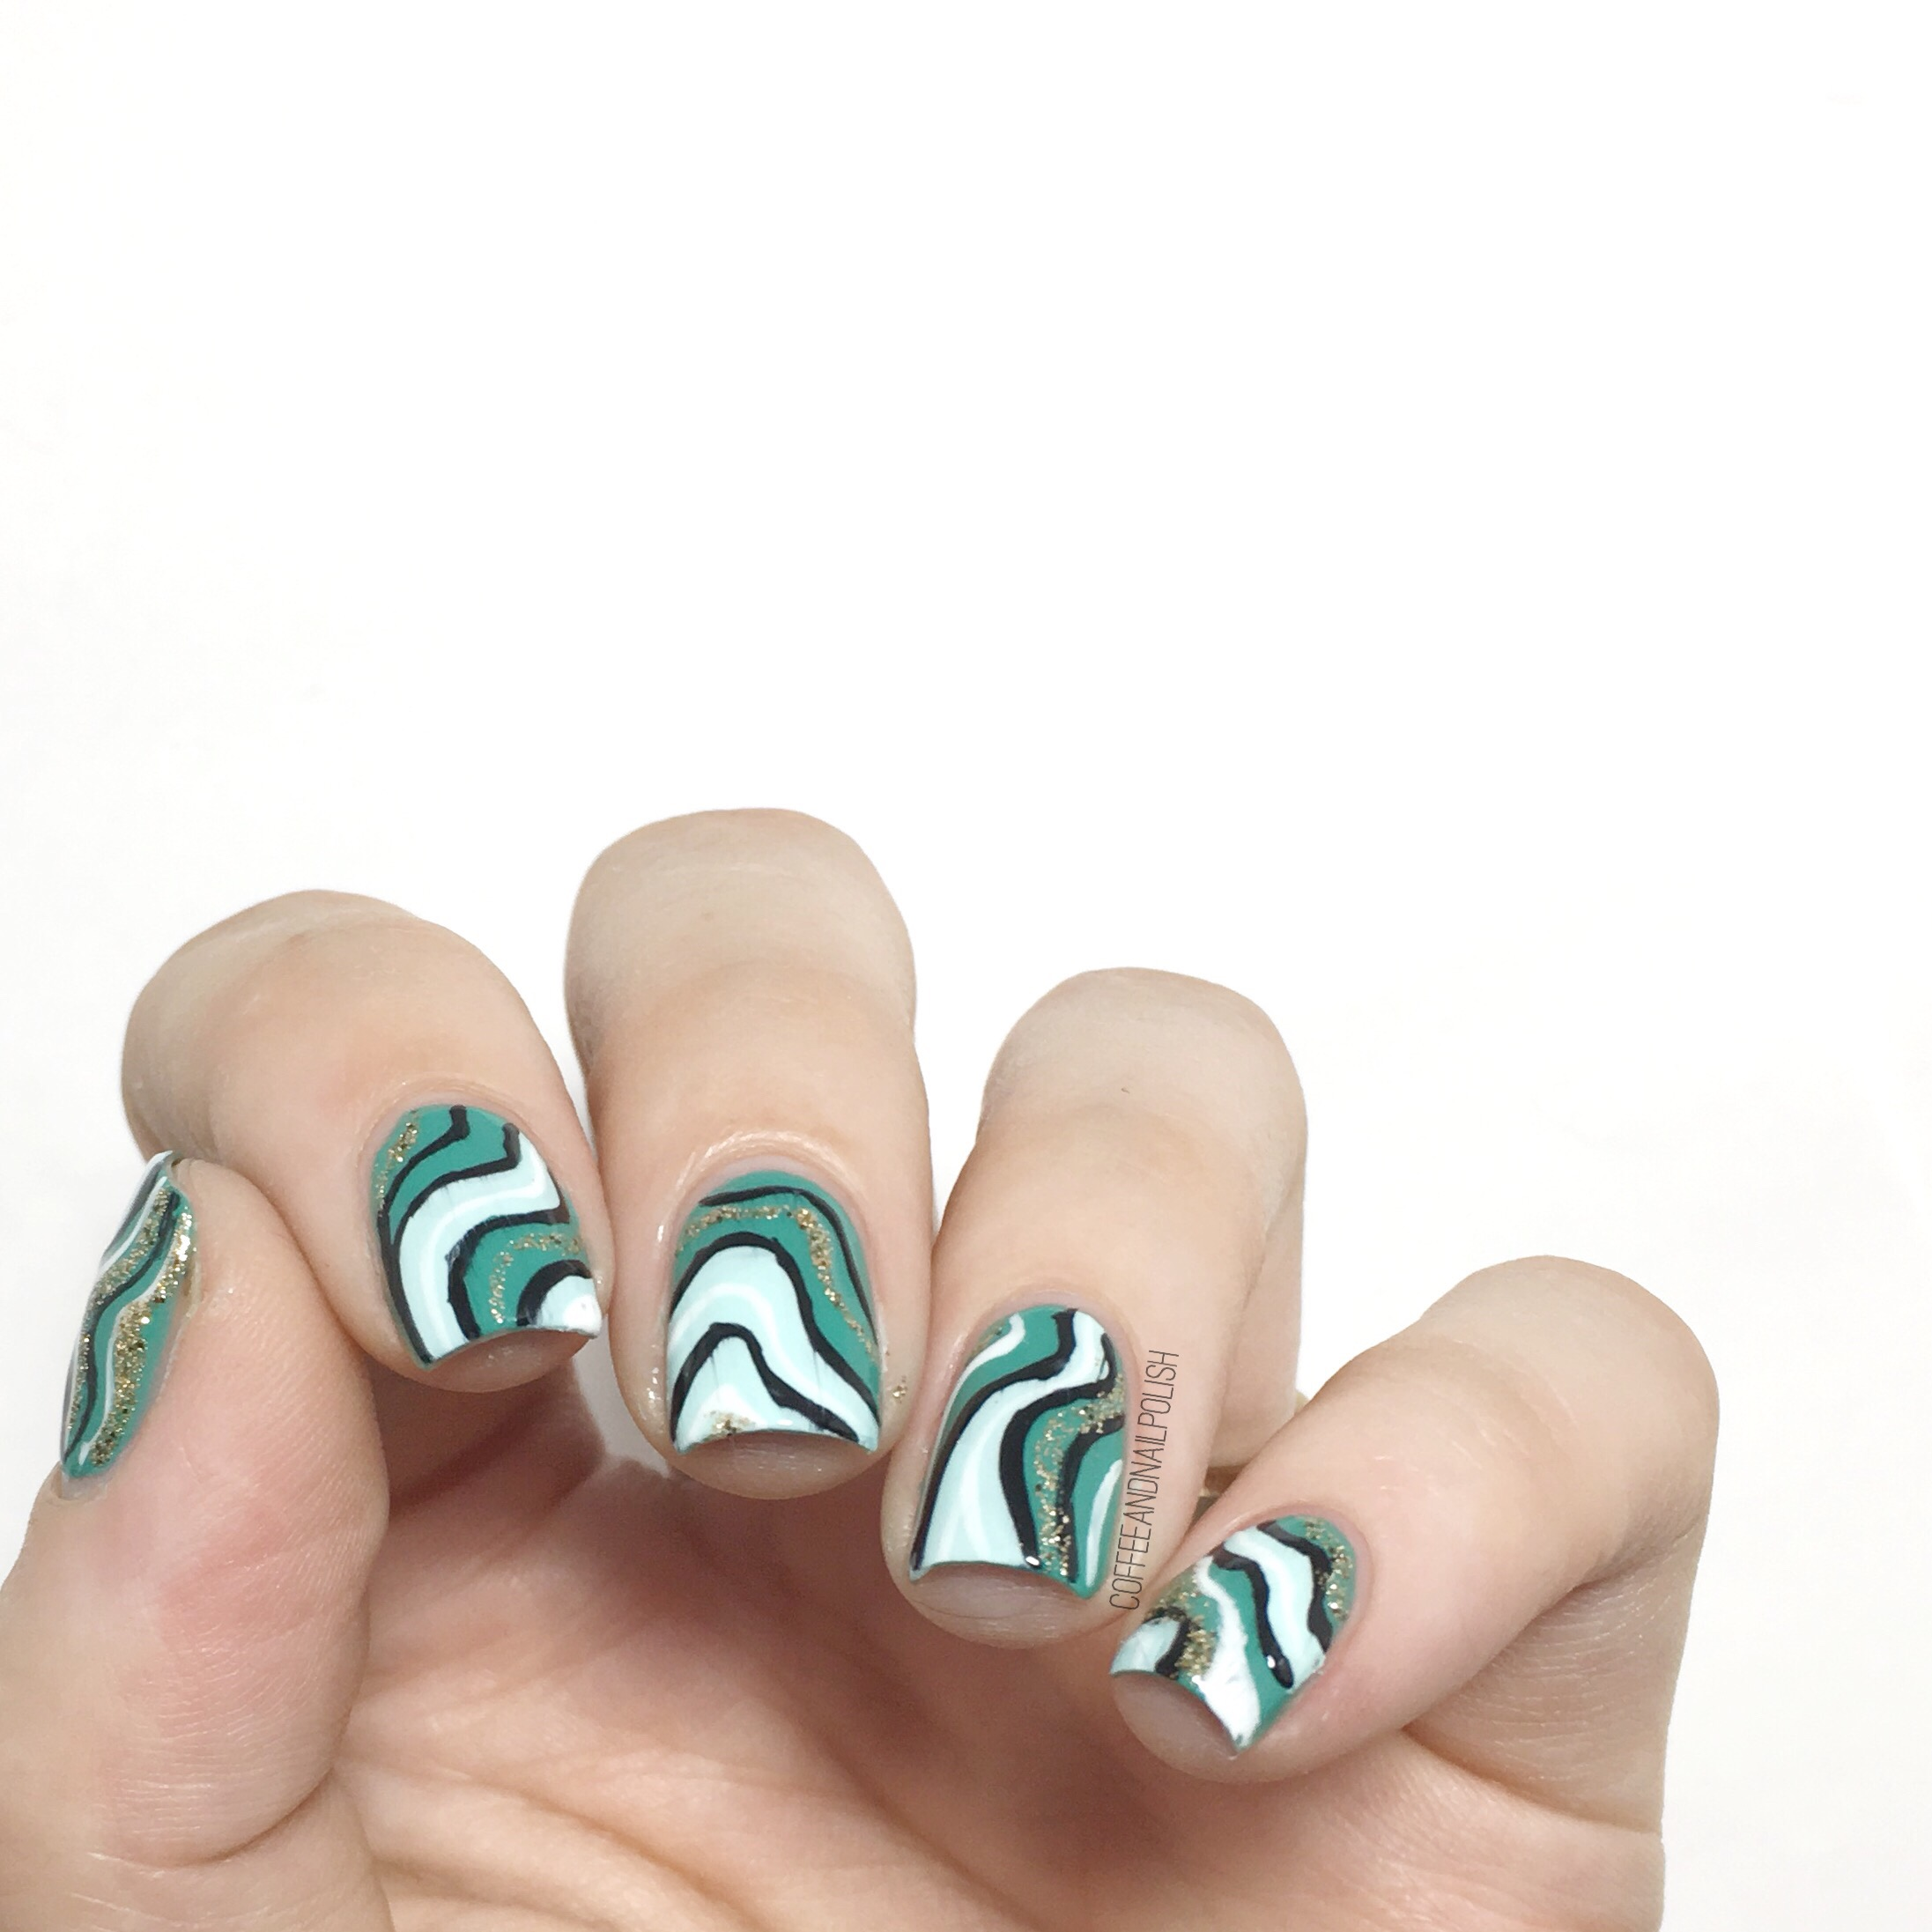 Concrete And Nail Polish Striped Nail Art: Coffee & Nail Polish